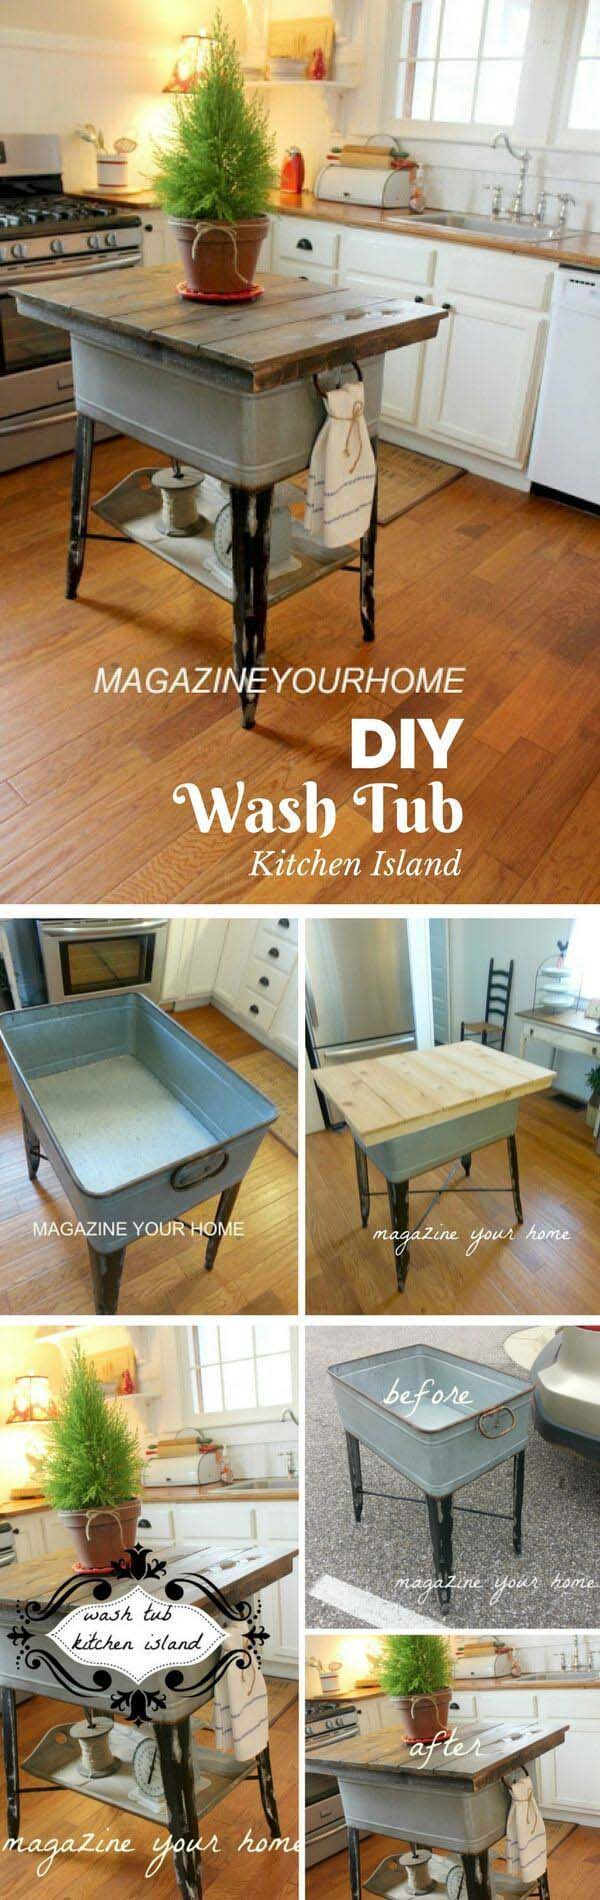 Kitchen Island Made from Wash Tub #galvanized #tub #bucket #decorhomeideas